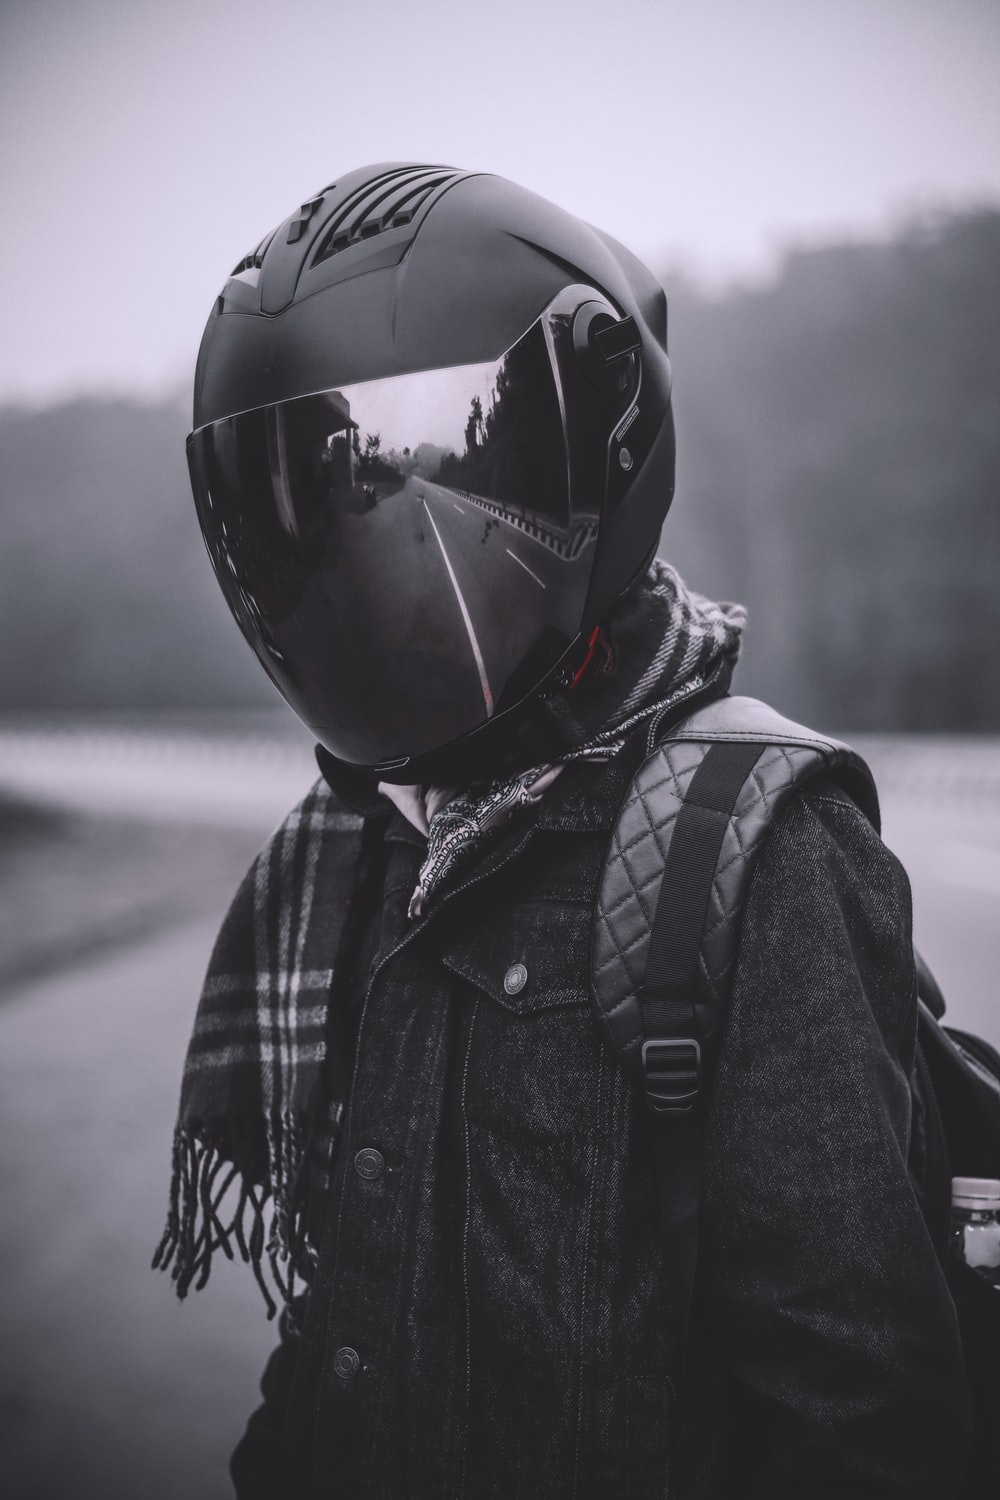 person wearing helmet and backpack in grayscale photo